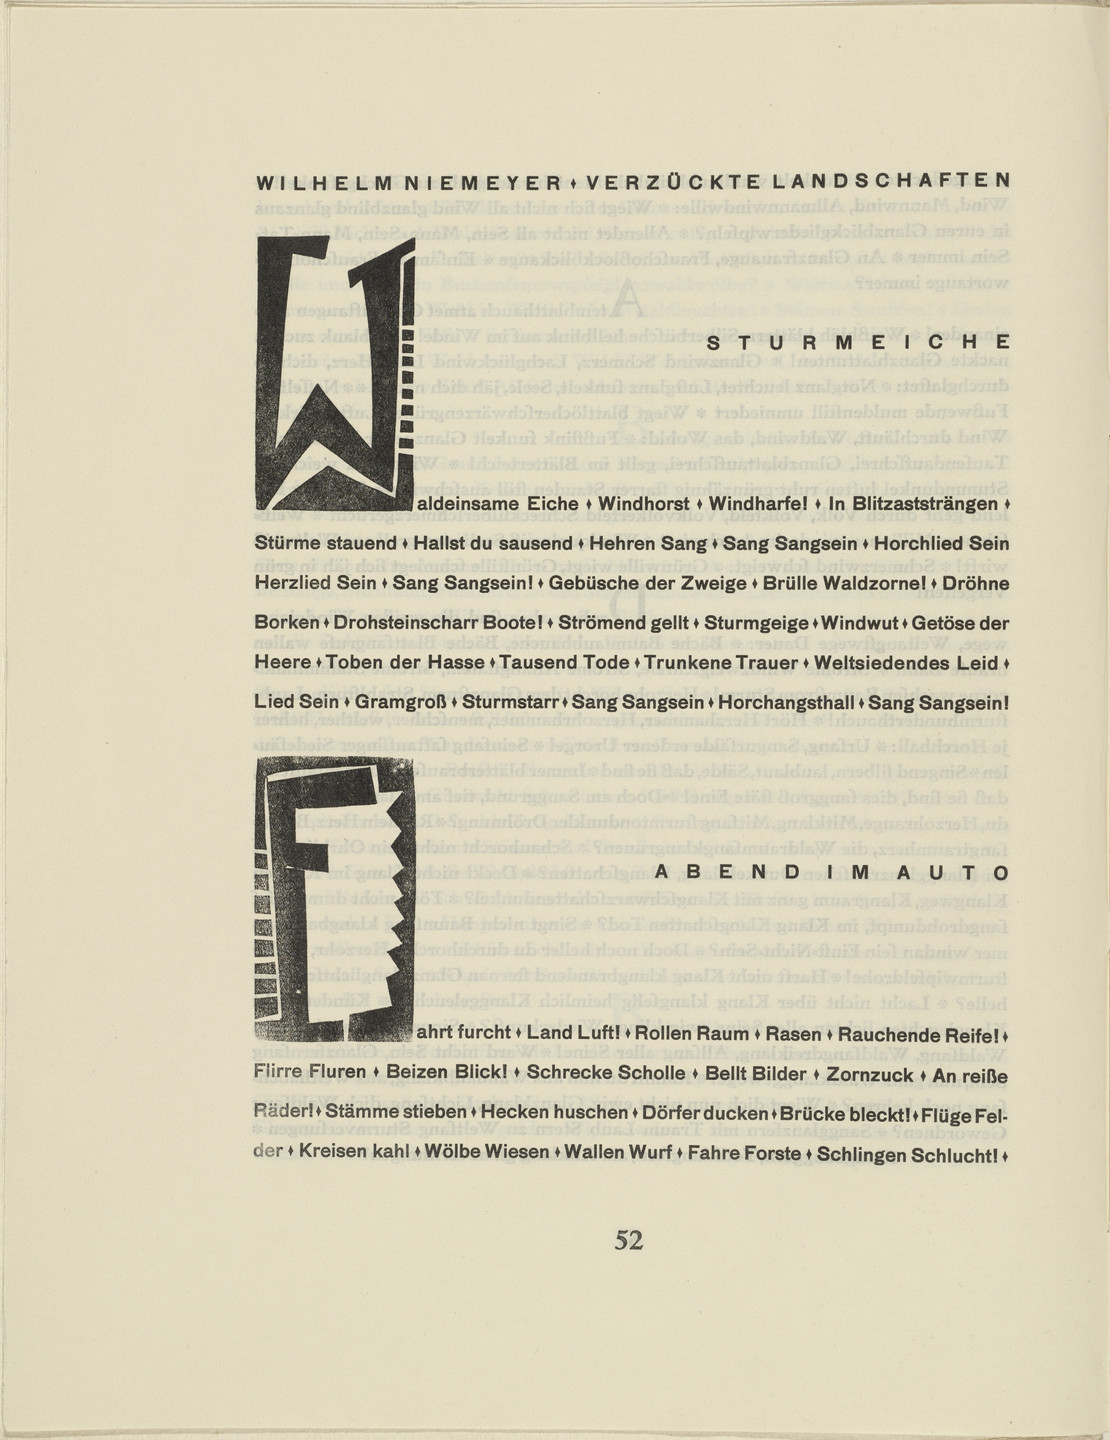 Karl Schmidt-Rottluff. Ornamental initial 'W' (Buchstabe 'W') from the periodical Kündung, vol. 1, no. 4, 5, 6 (April, May, June 1921)_ _. 1921 (executed 1920)